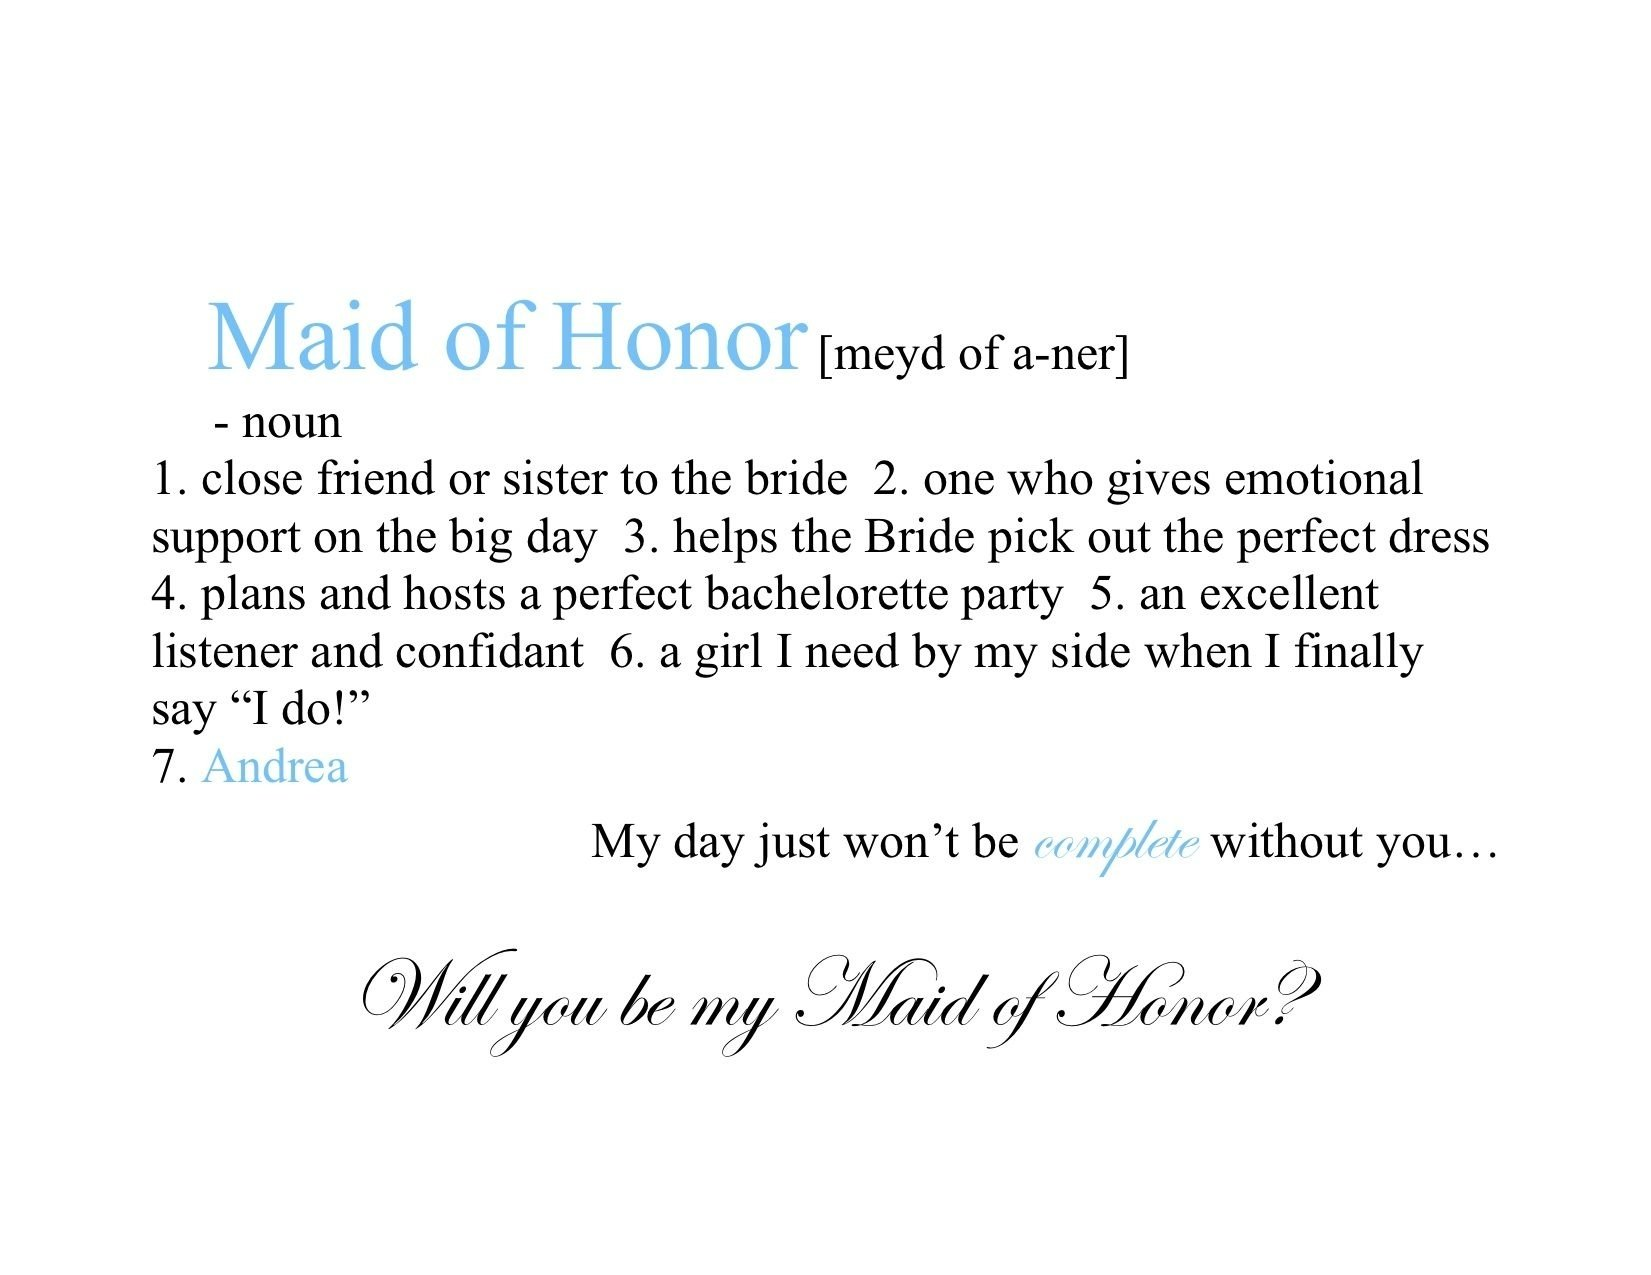 10 Beautiful Maid Of Honor Speech Ideas maid of honor definition wedding pinterest definitions maids 2020